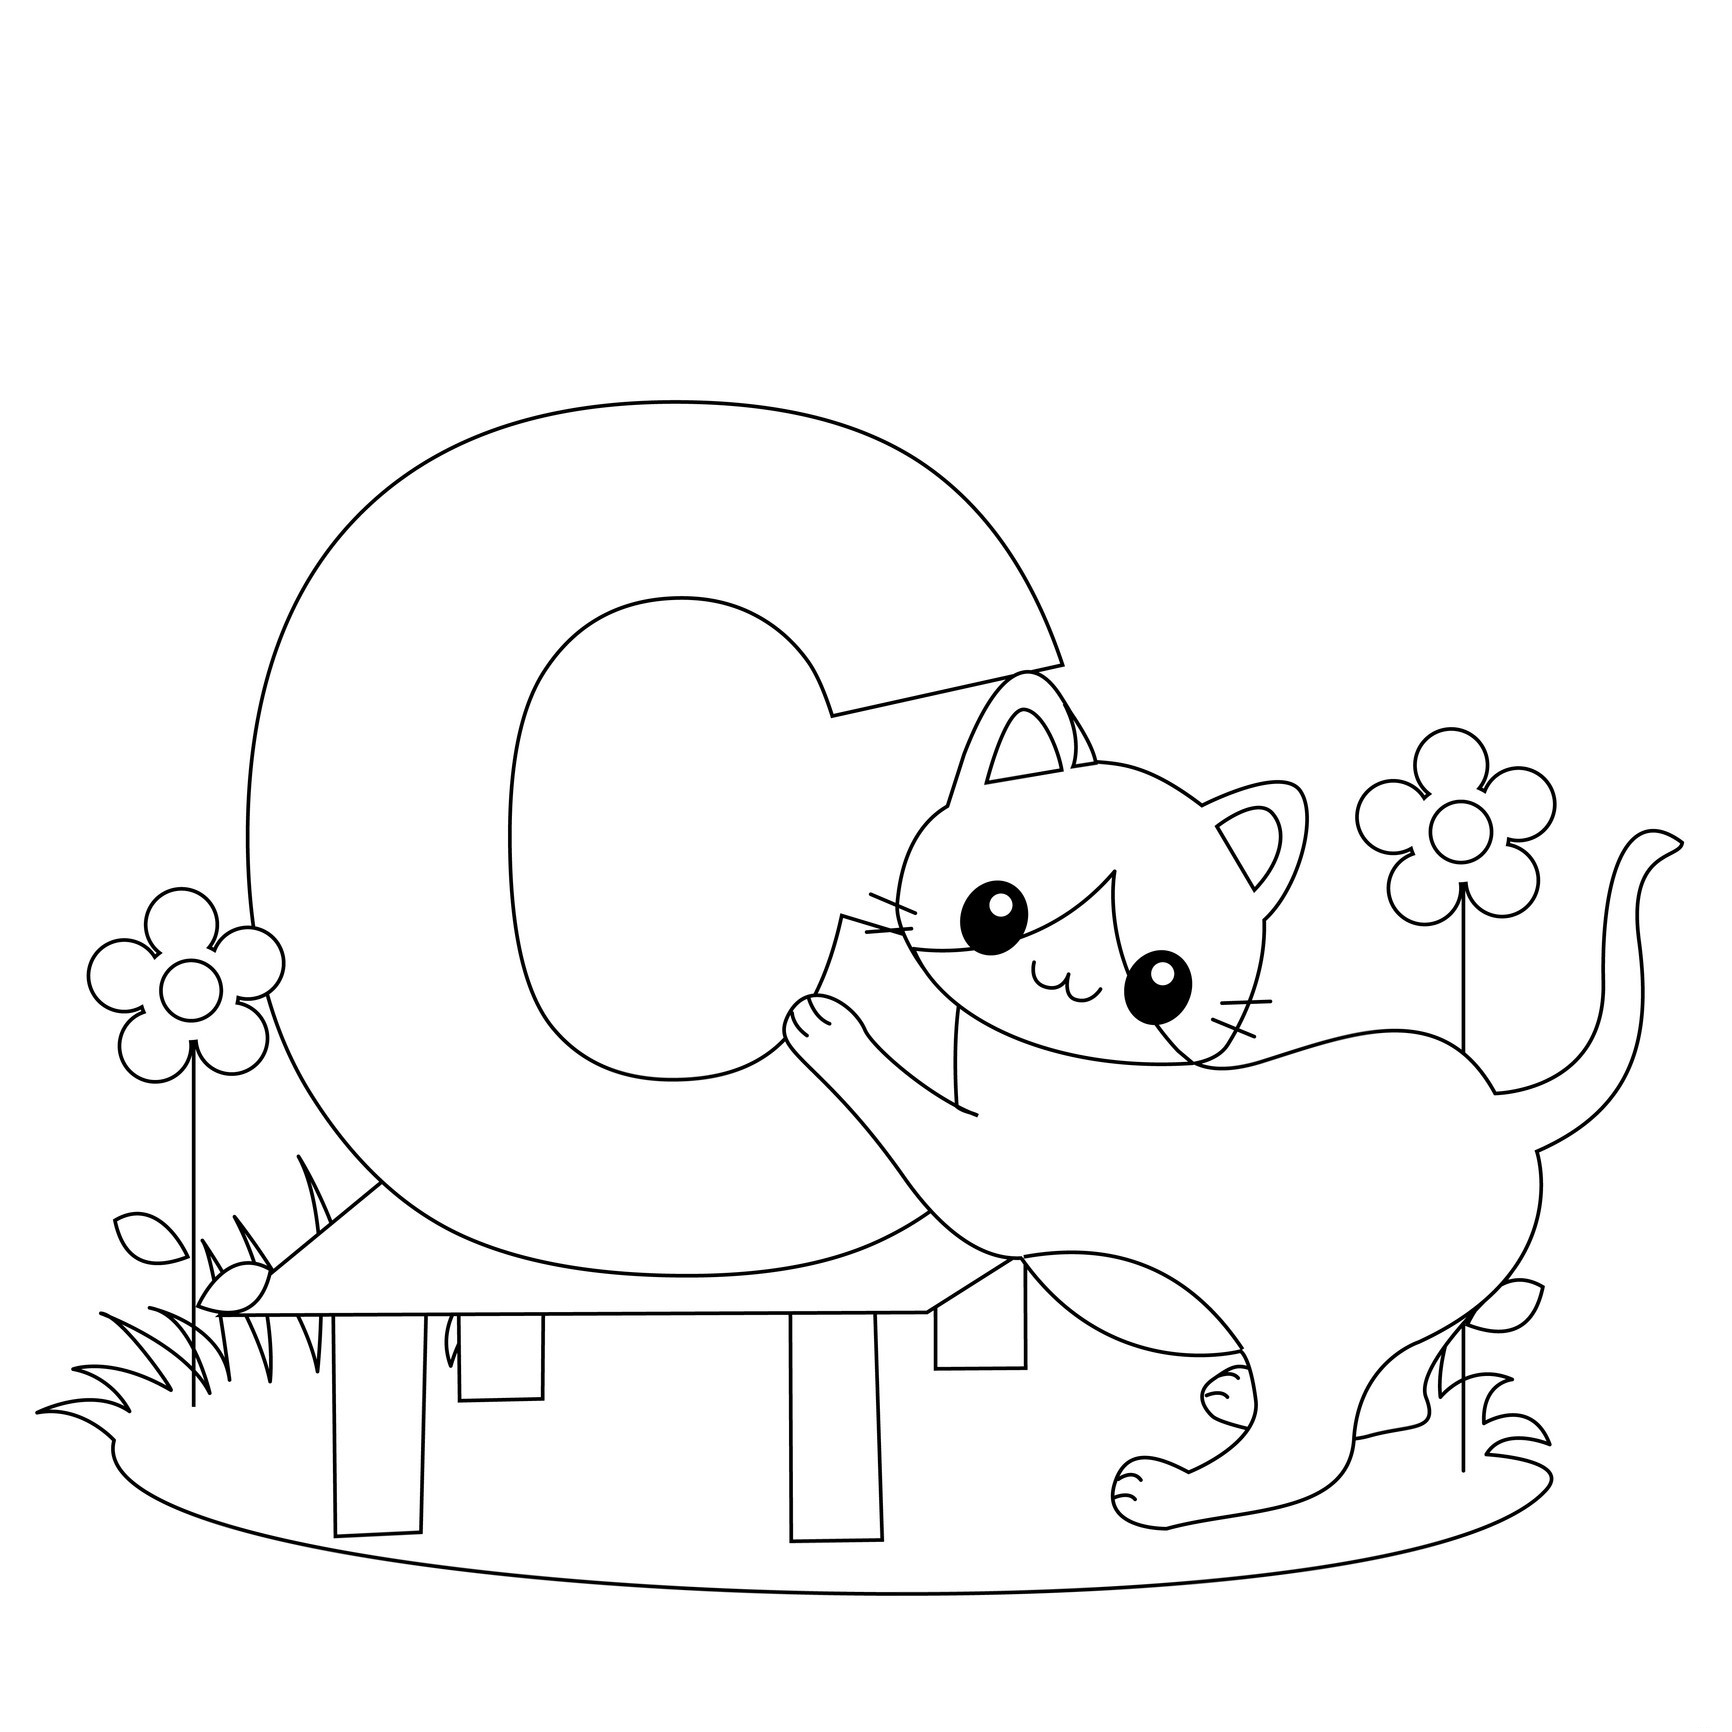 alphabet coloring pages download - photo#30